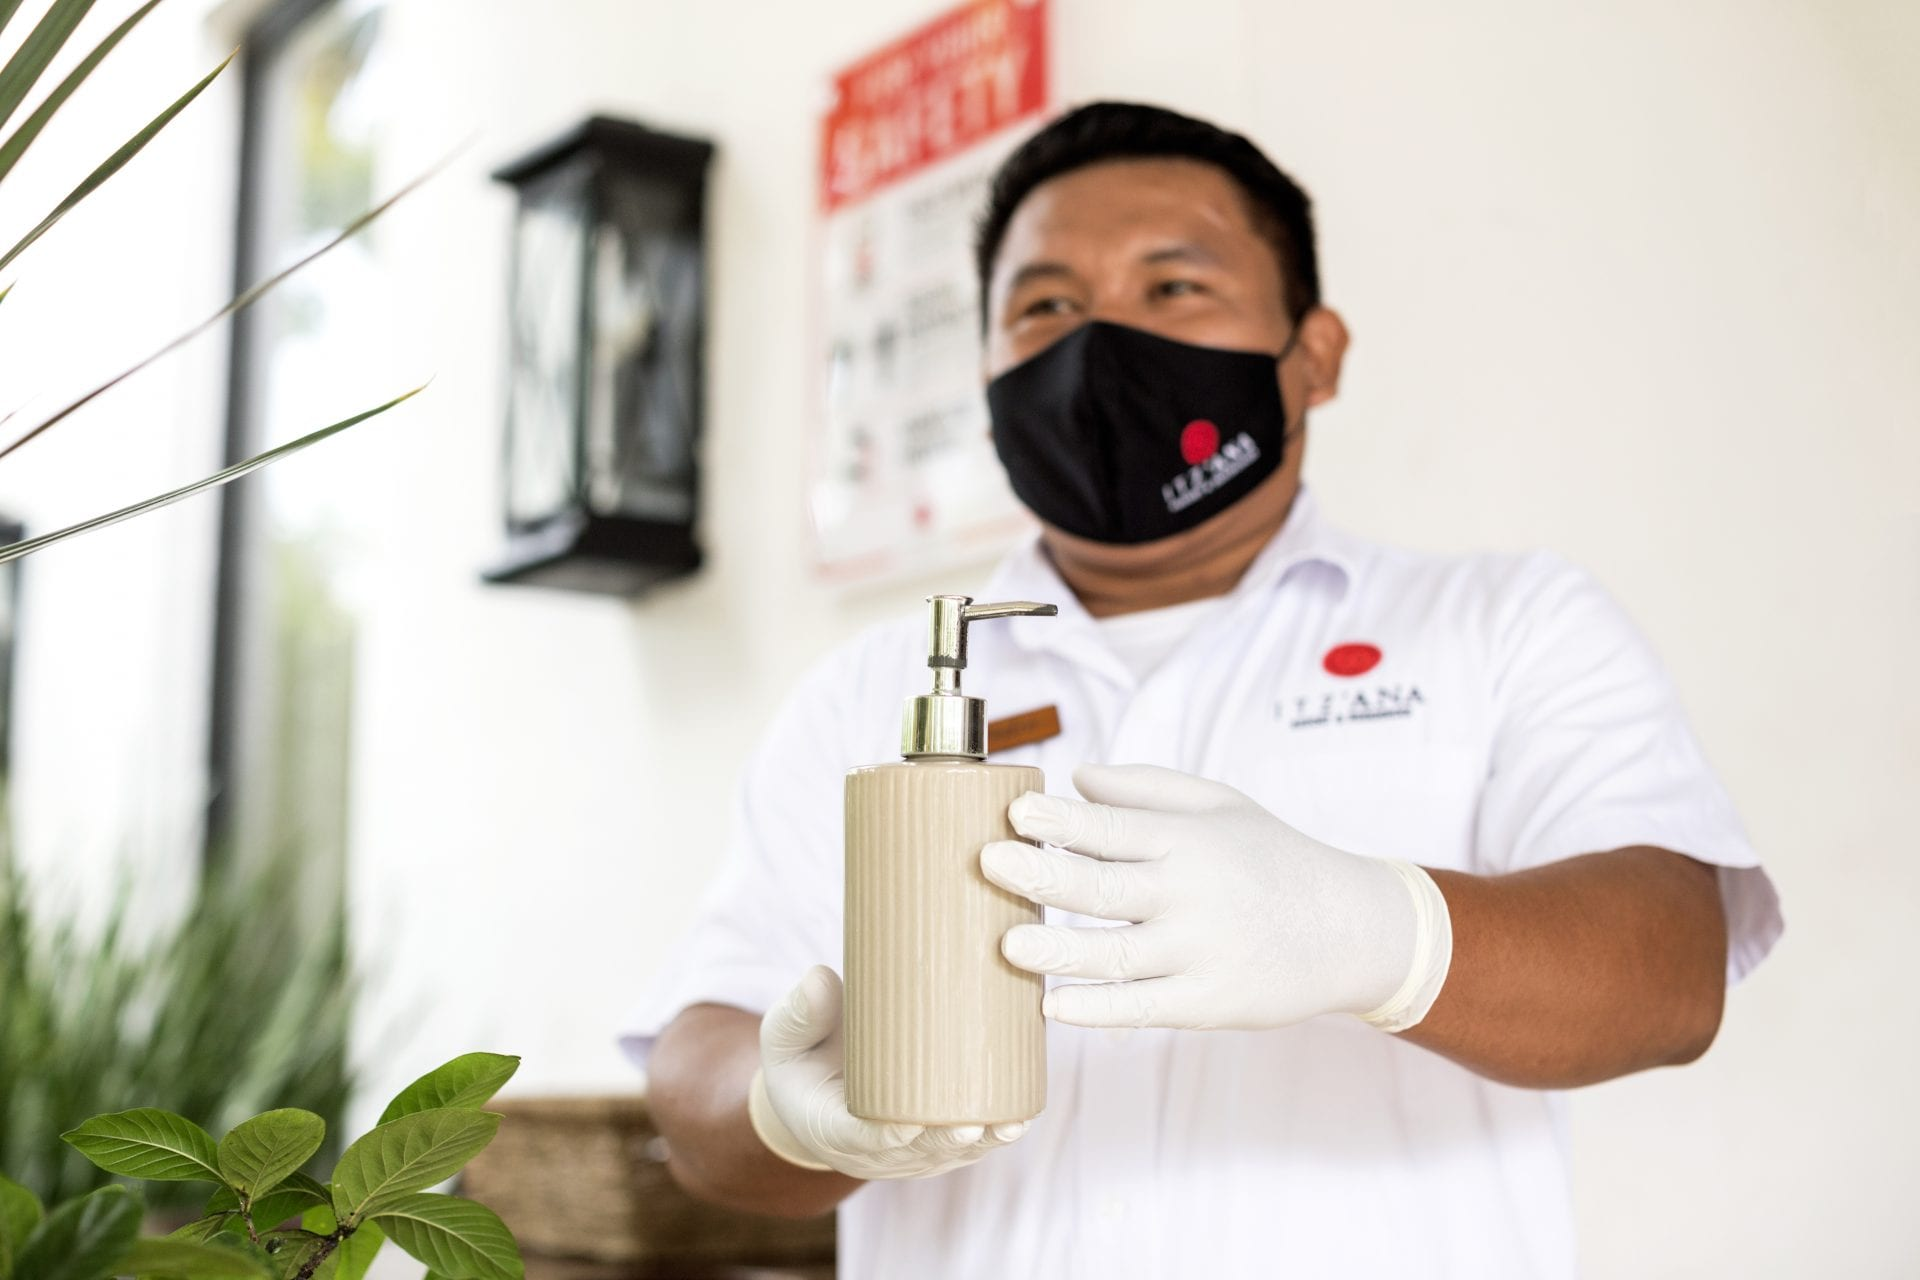 Health and Safety_ Itz'ana Staff belize face mask